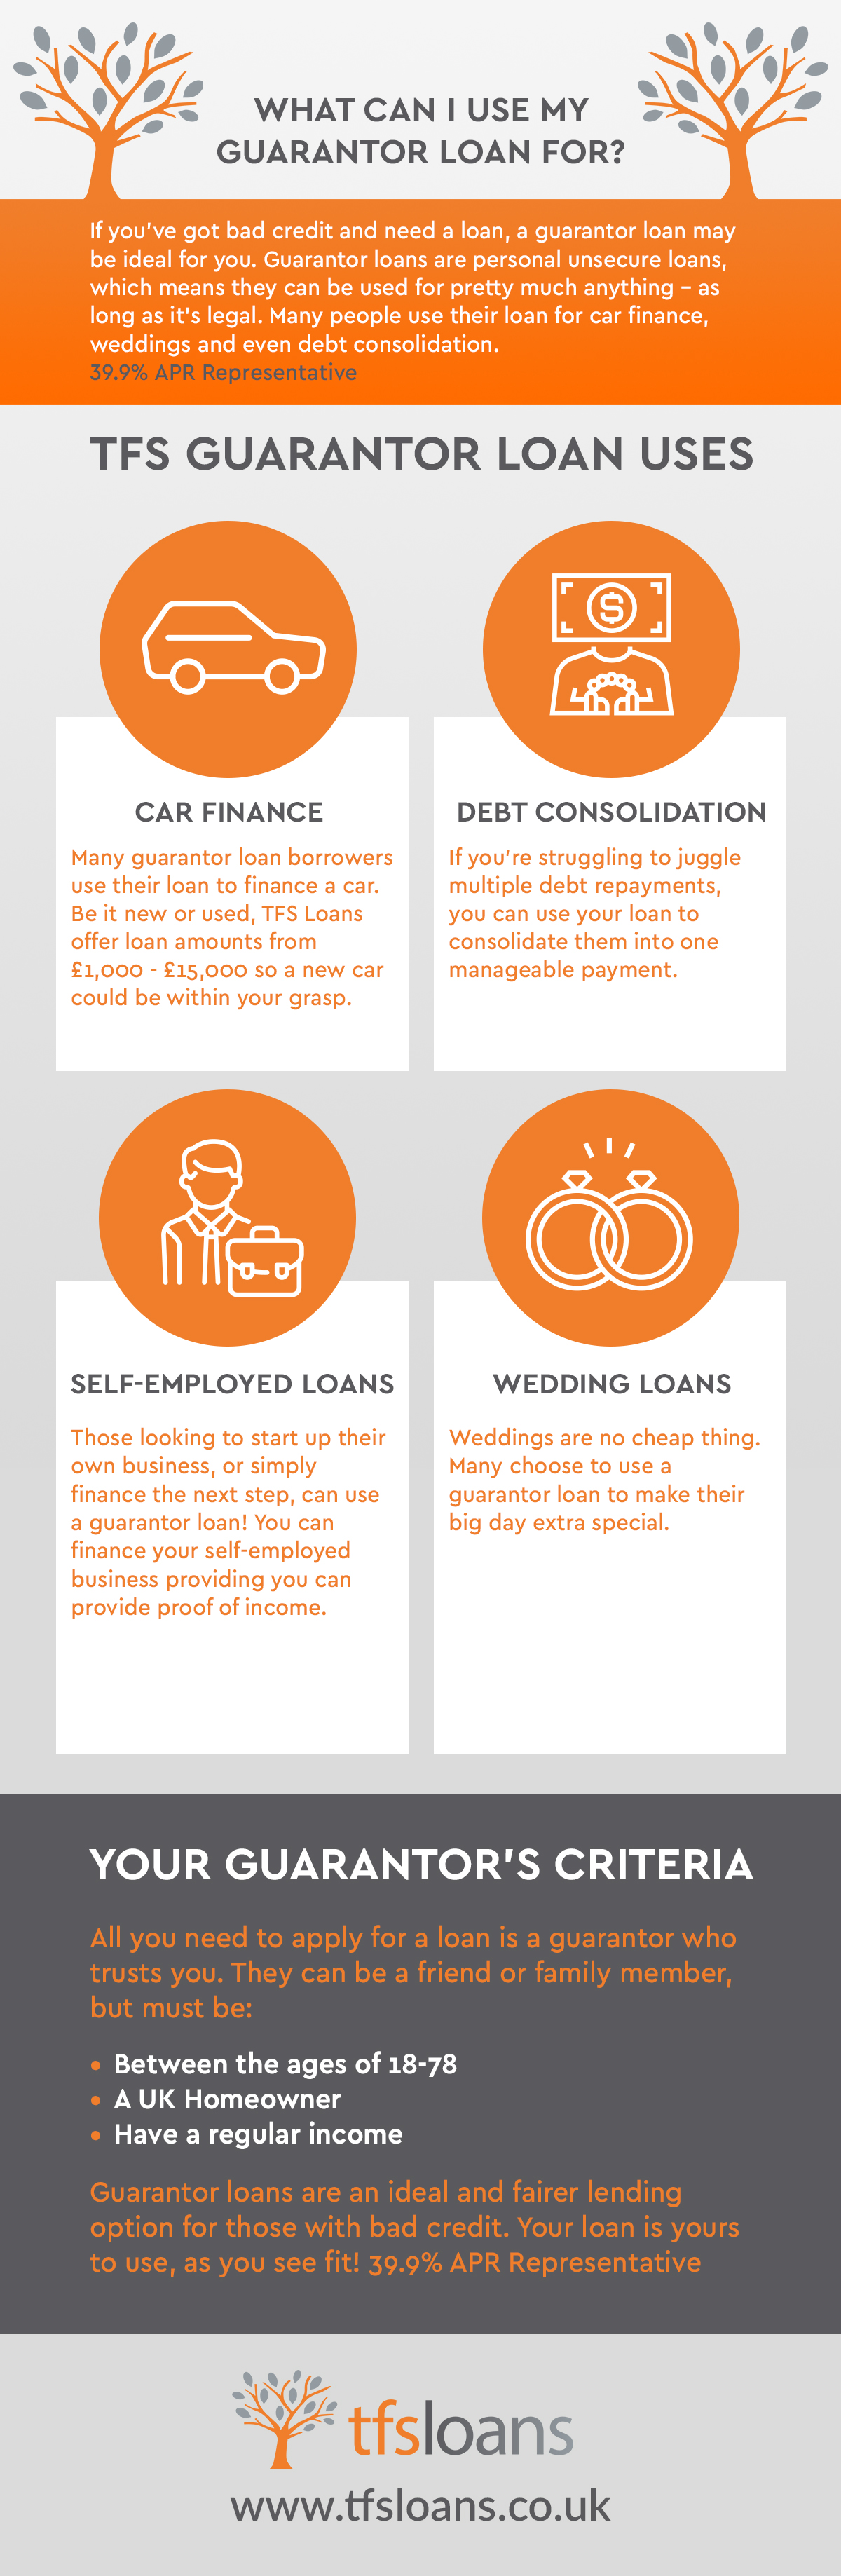 What Can I Use My Guarantor Loan For?